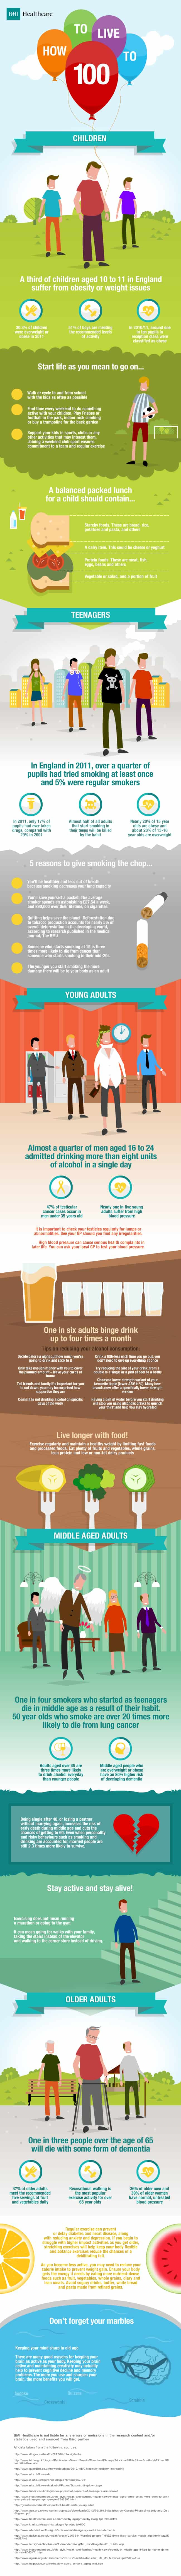 Infographic: How To Live Healthy To 100